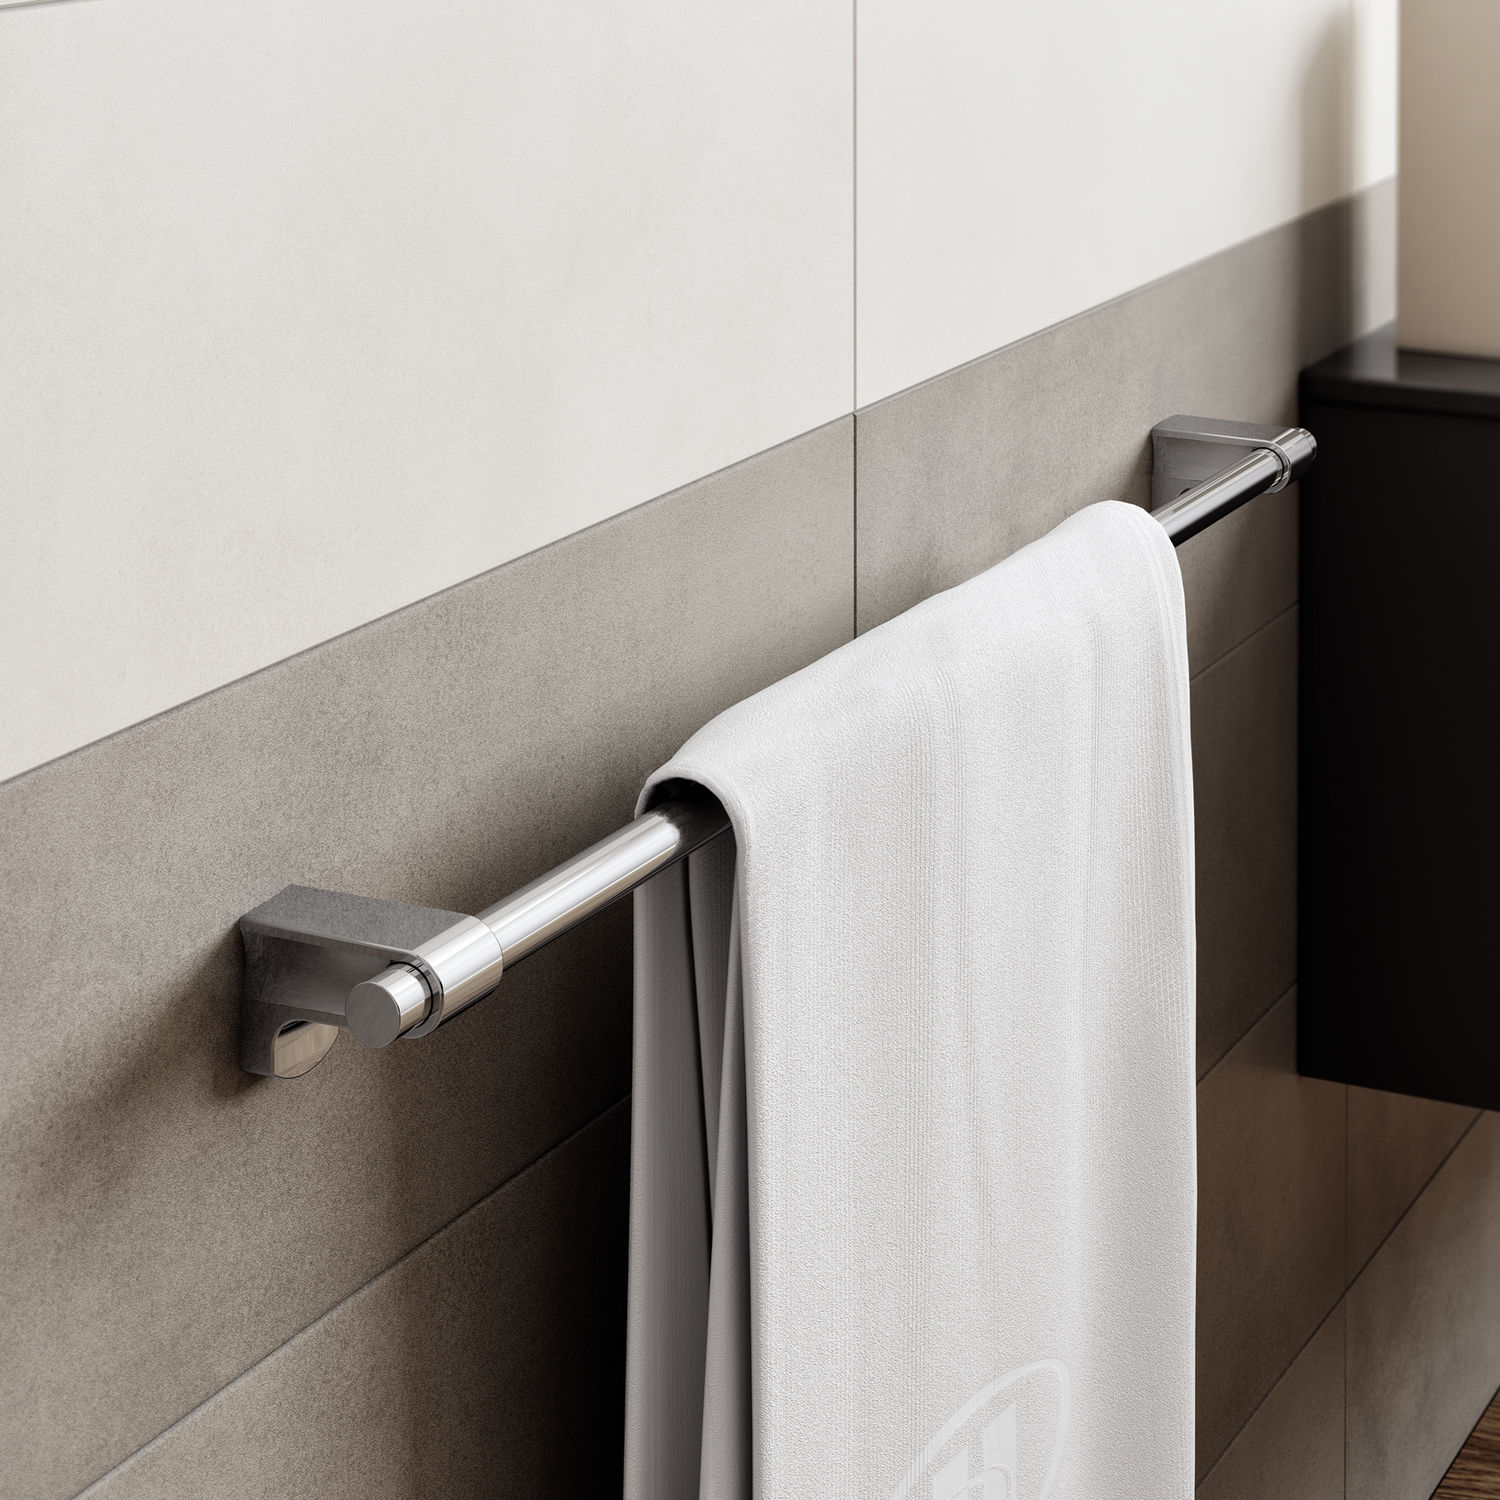 1-bar towel rack / wall-mounted / brass - S1 SUIT: 161454/161461 ...